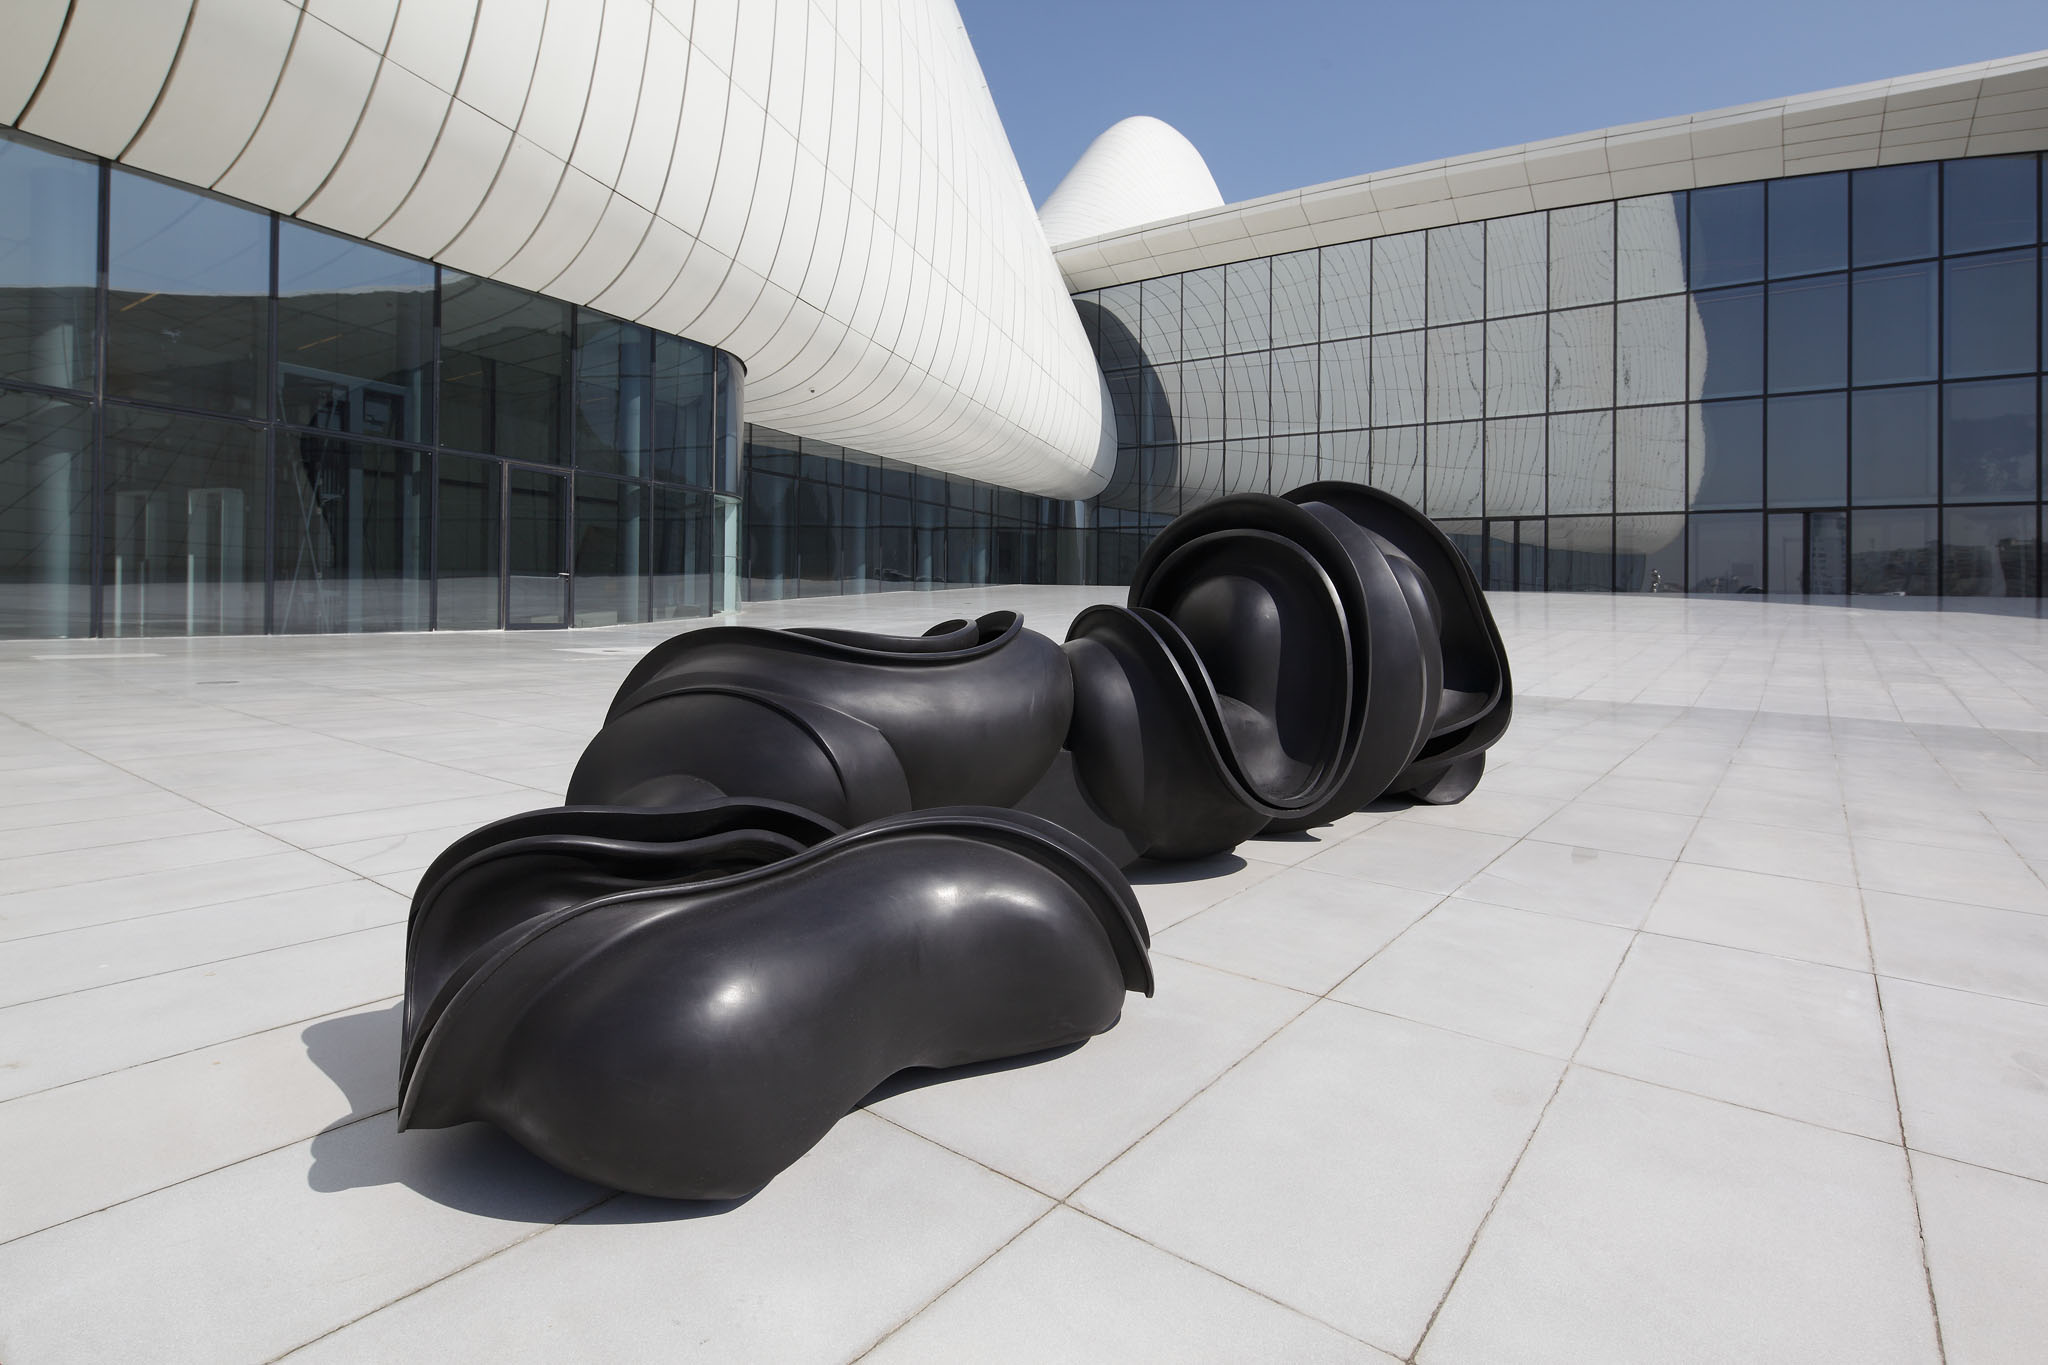 Tony Cragg, Early Forms, 130 x 410 x 160 cm, 2001, fot. Michael Richter